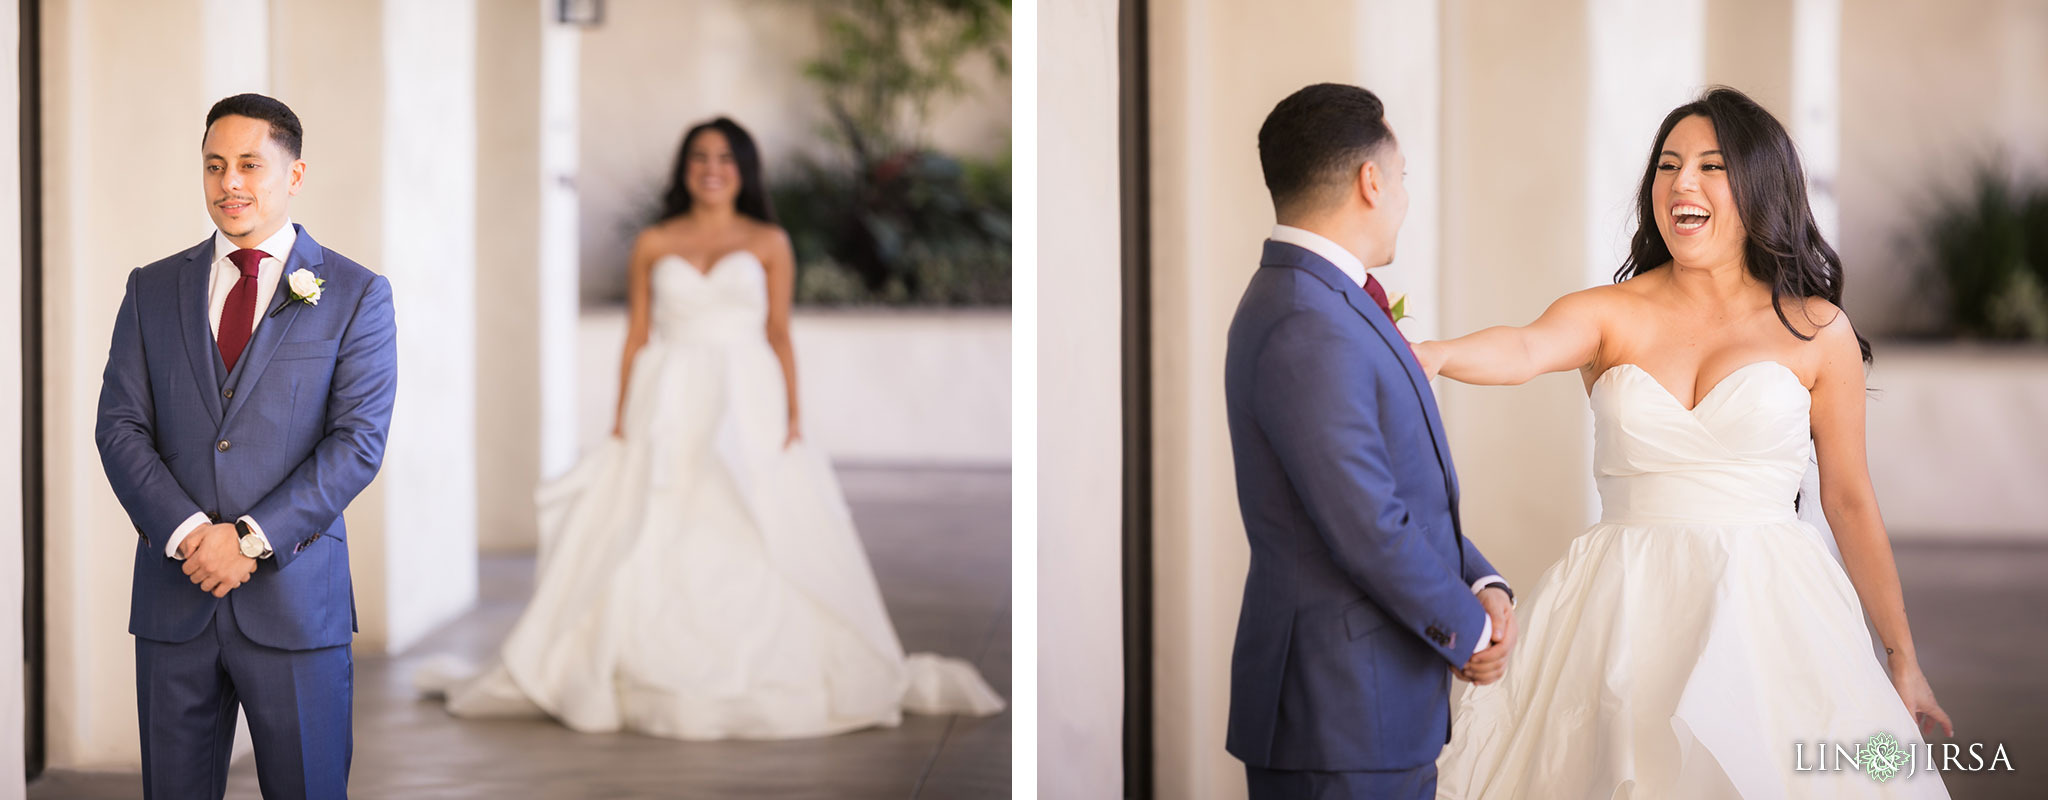 12 hyatt regency huntington beach first look wedding photography